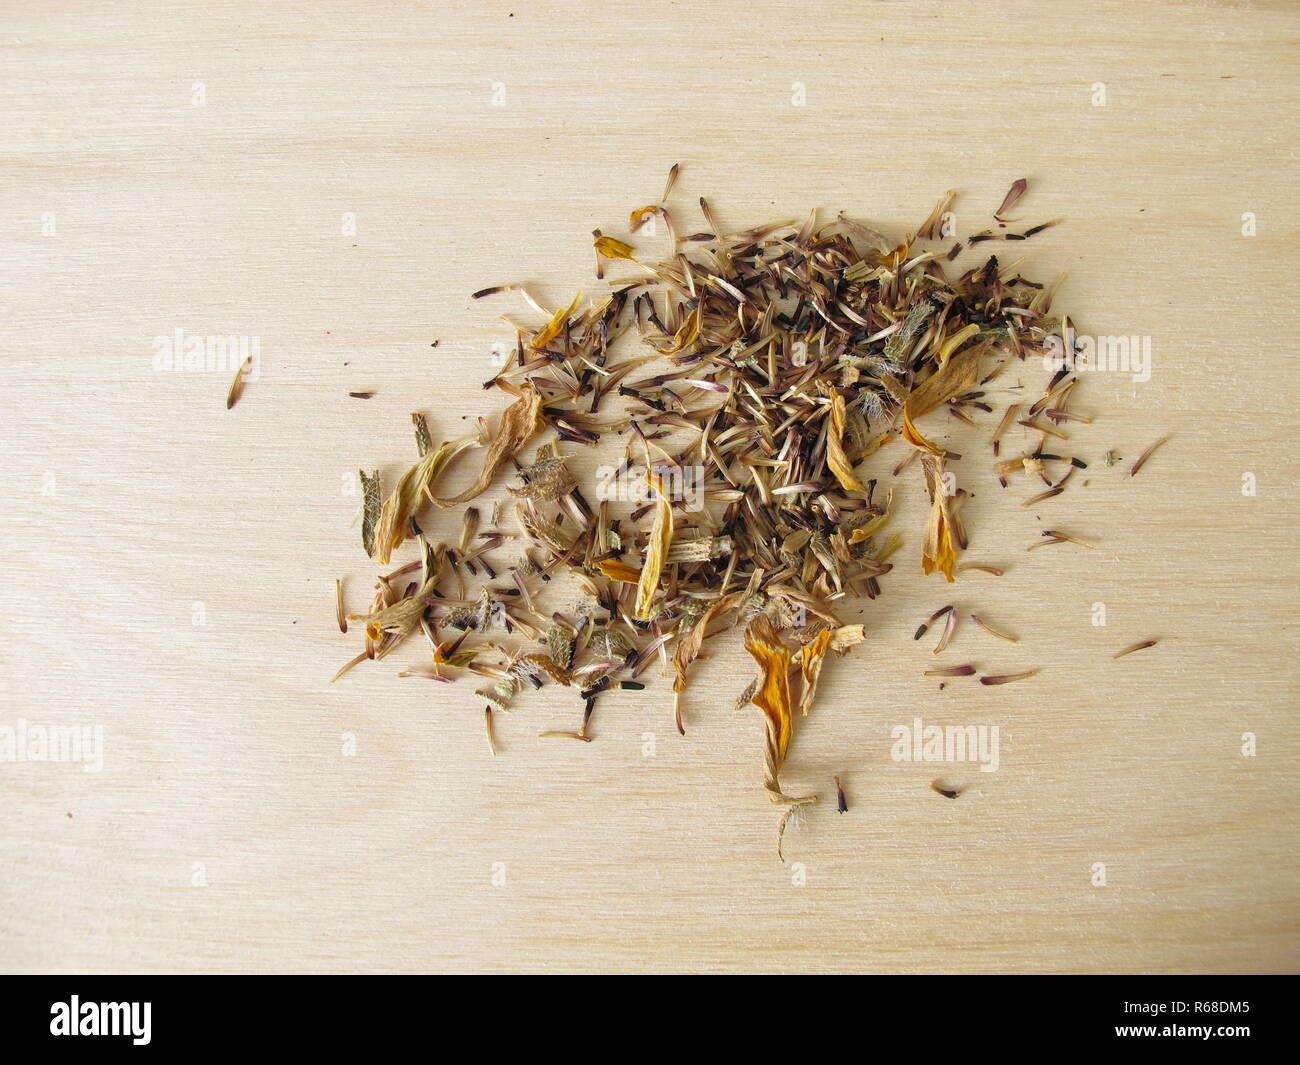 homegrown seeds of coneflower flowers - Stock Image